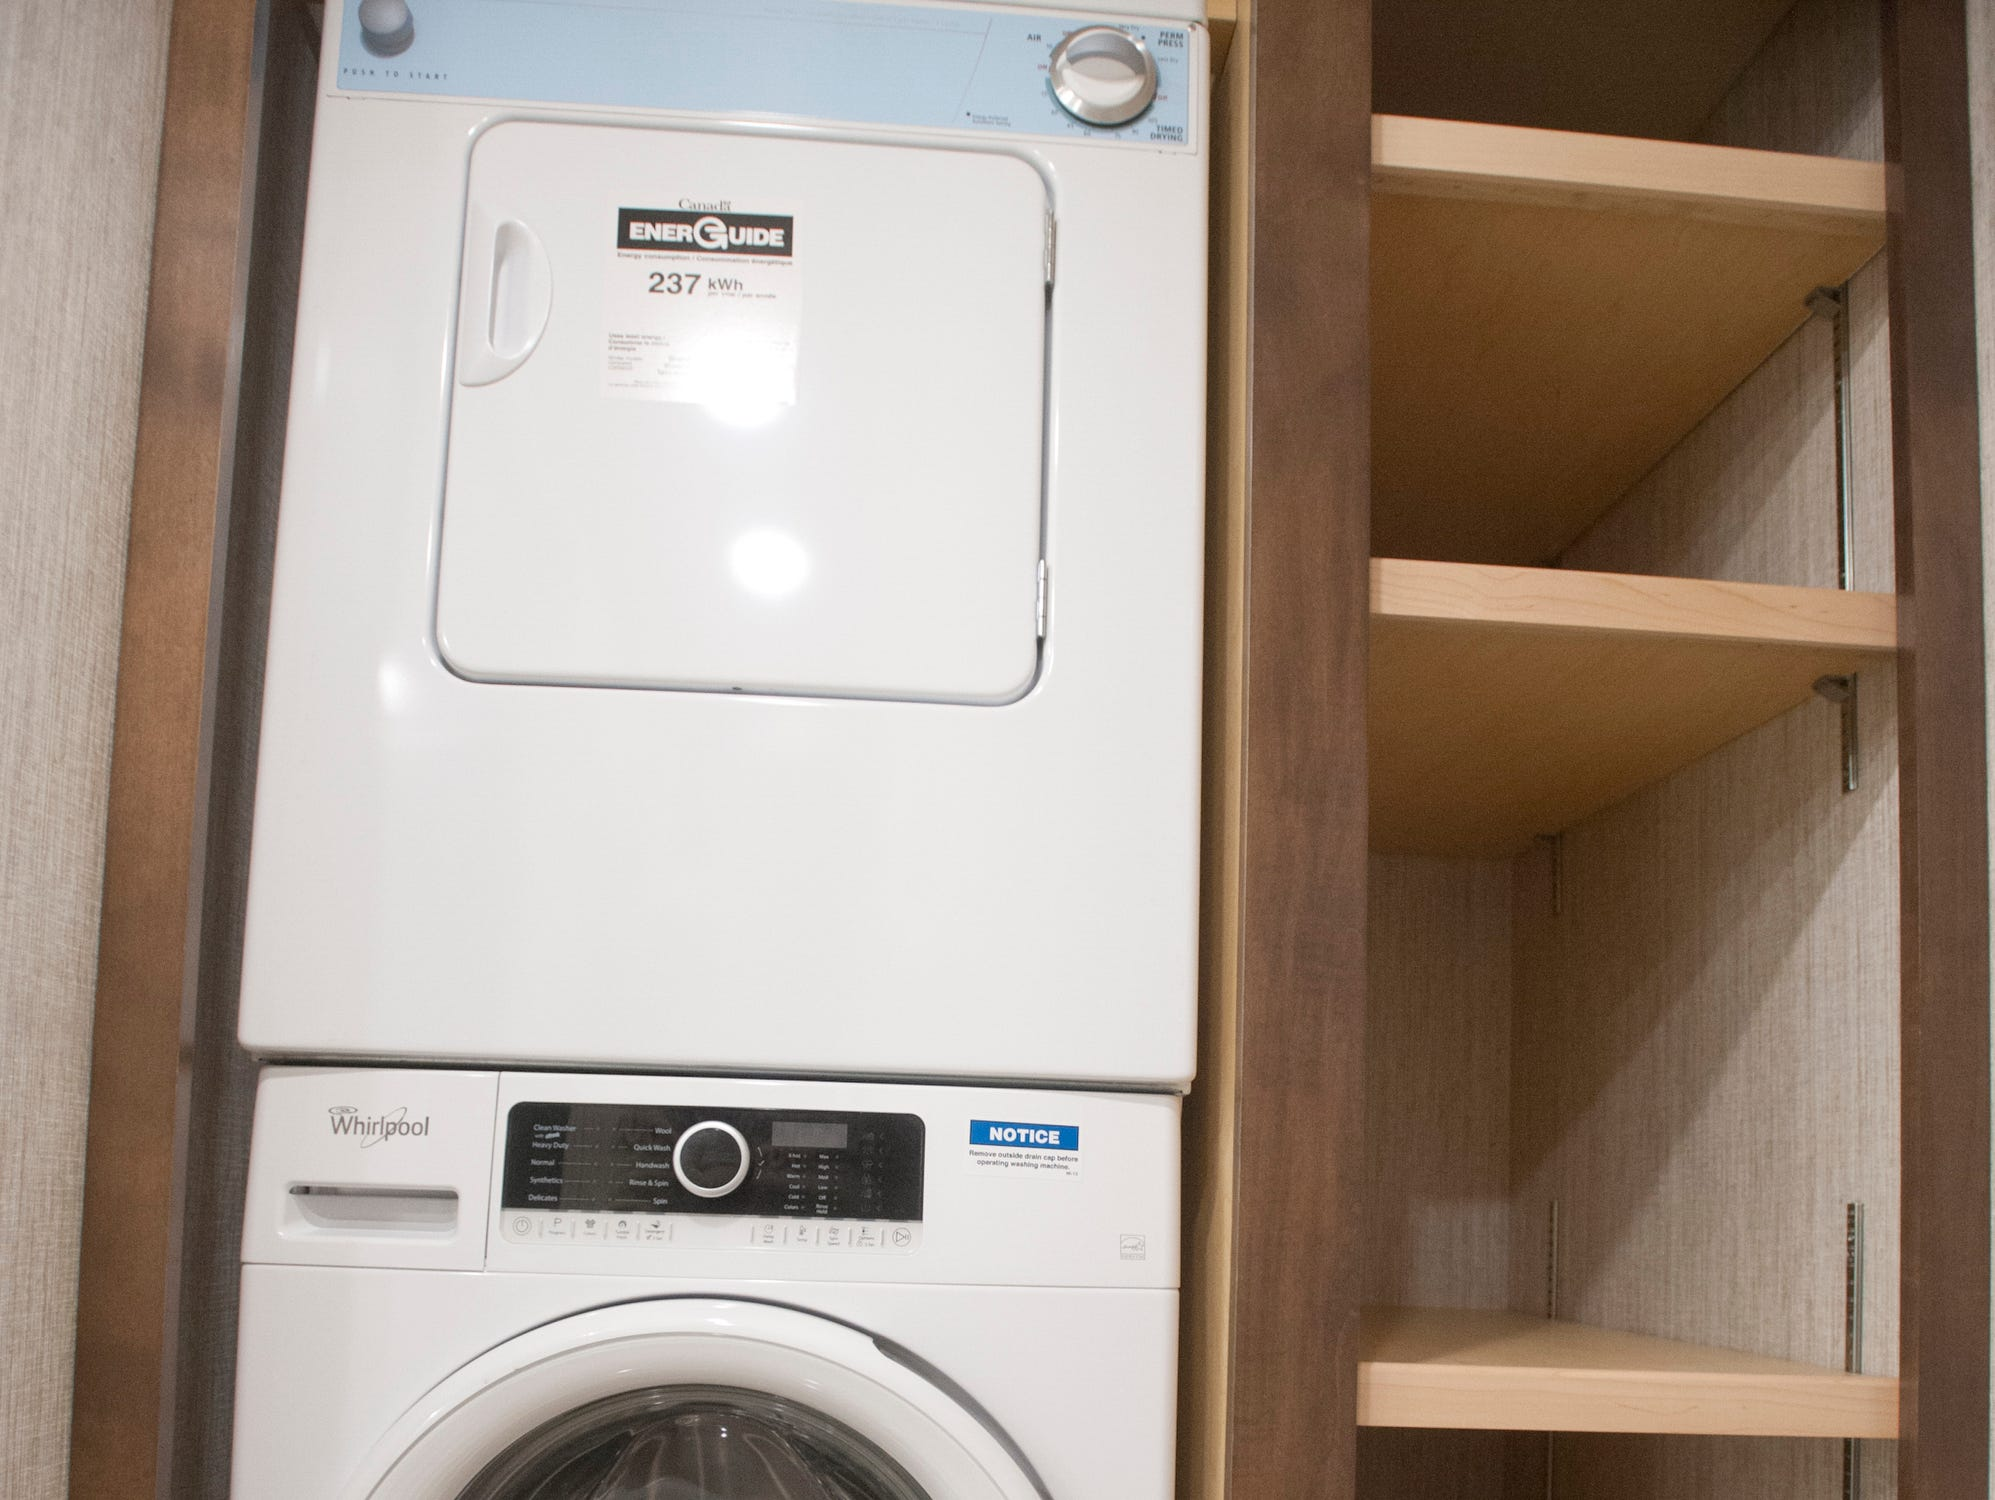 The master suite's closet includes a stacked washer-dryer.11 December 2018